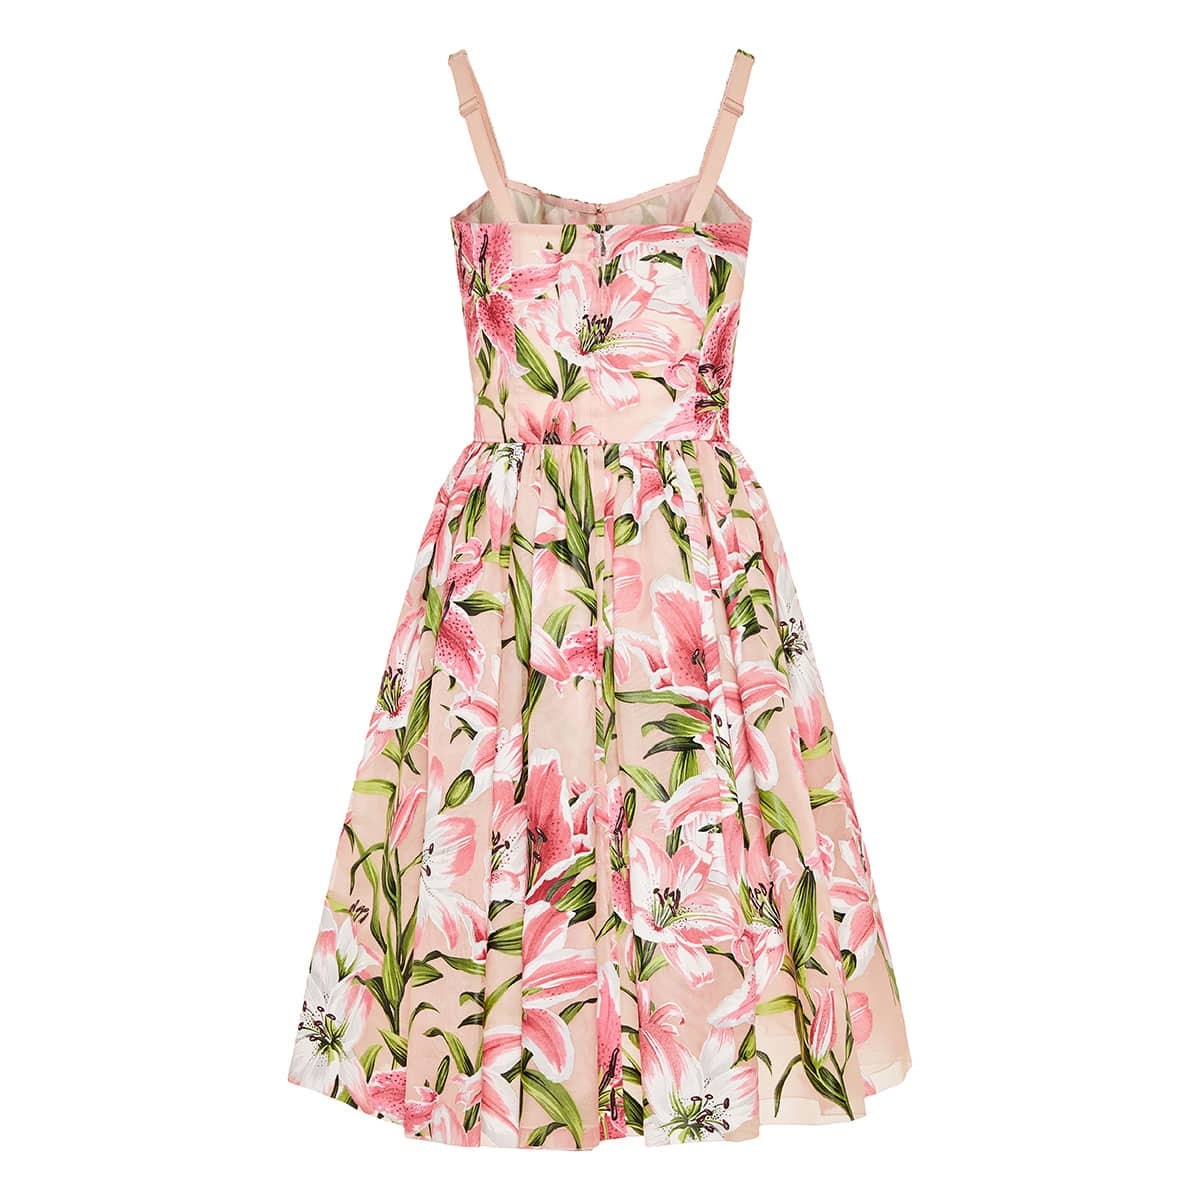 Lily-print flared crepe dress